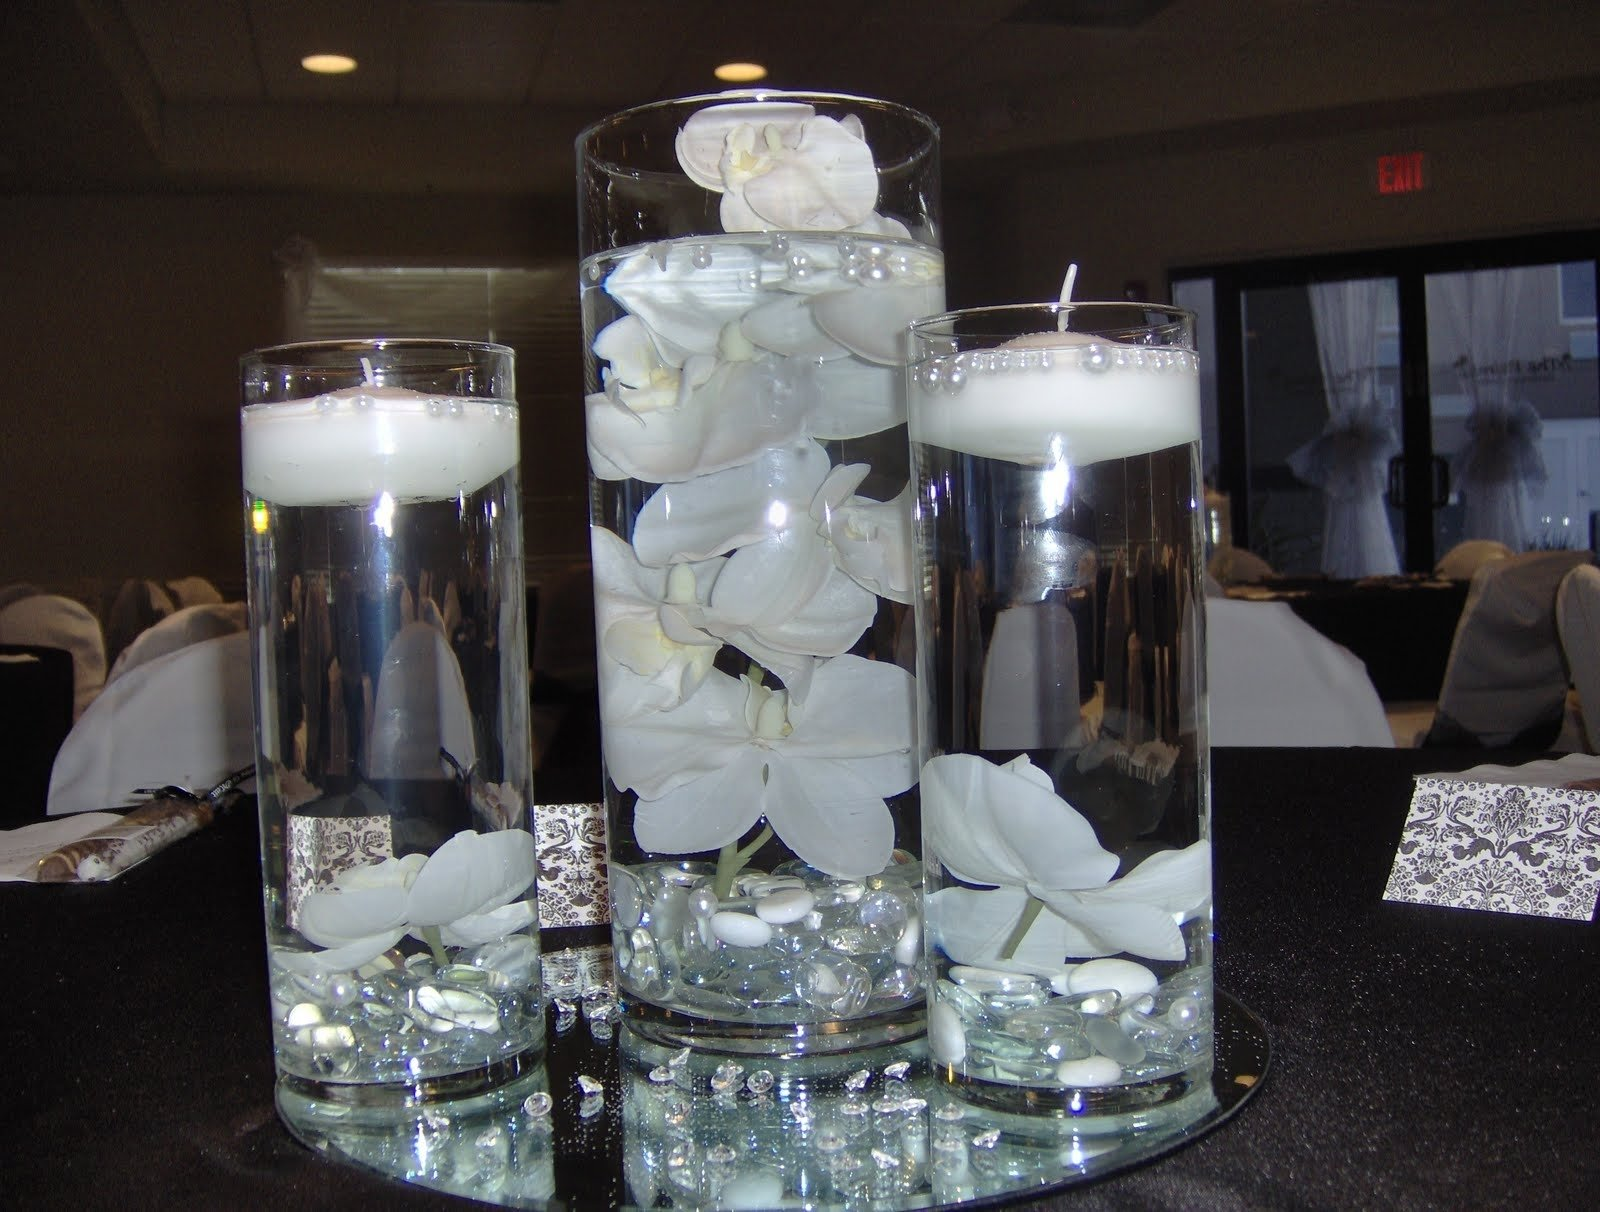 10 Fashionable Wedding Centerpiece Ideas Without Flowers wedding decor decorative wedding centerpieces ideas cheap glass 2020